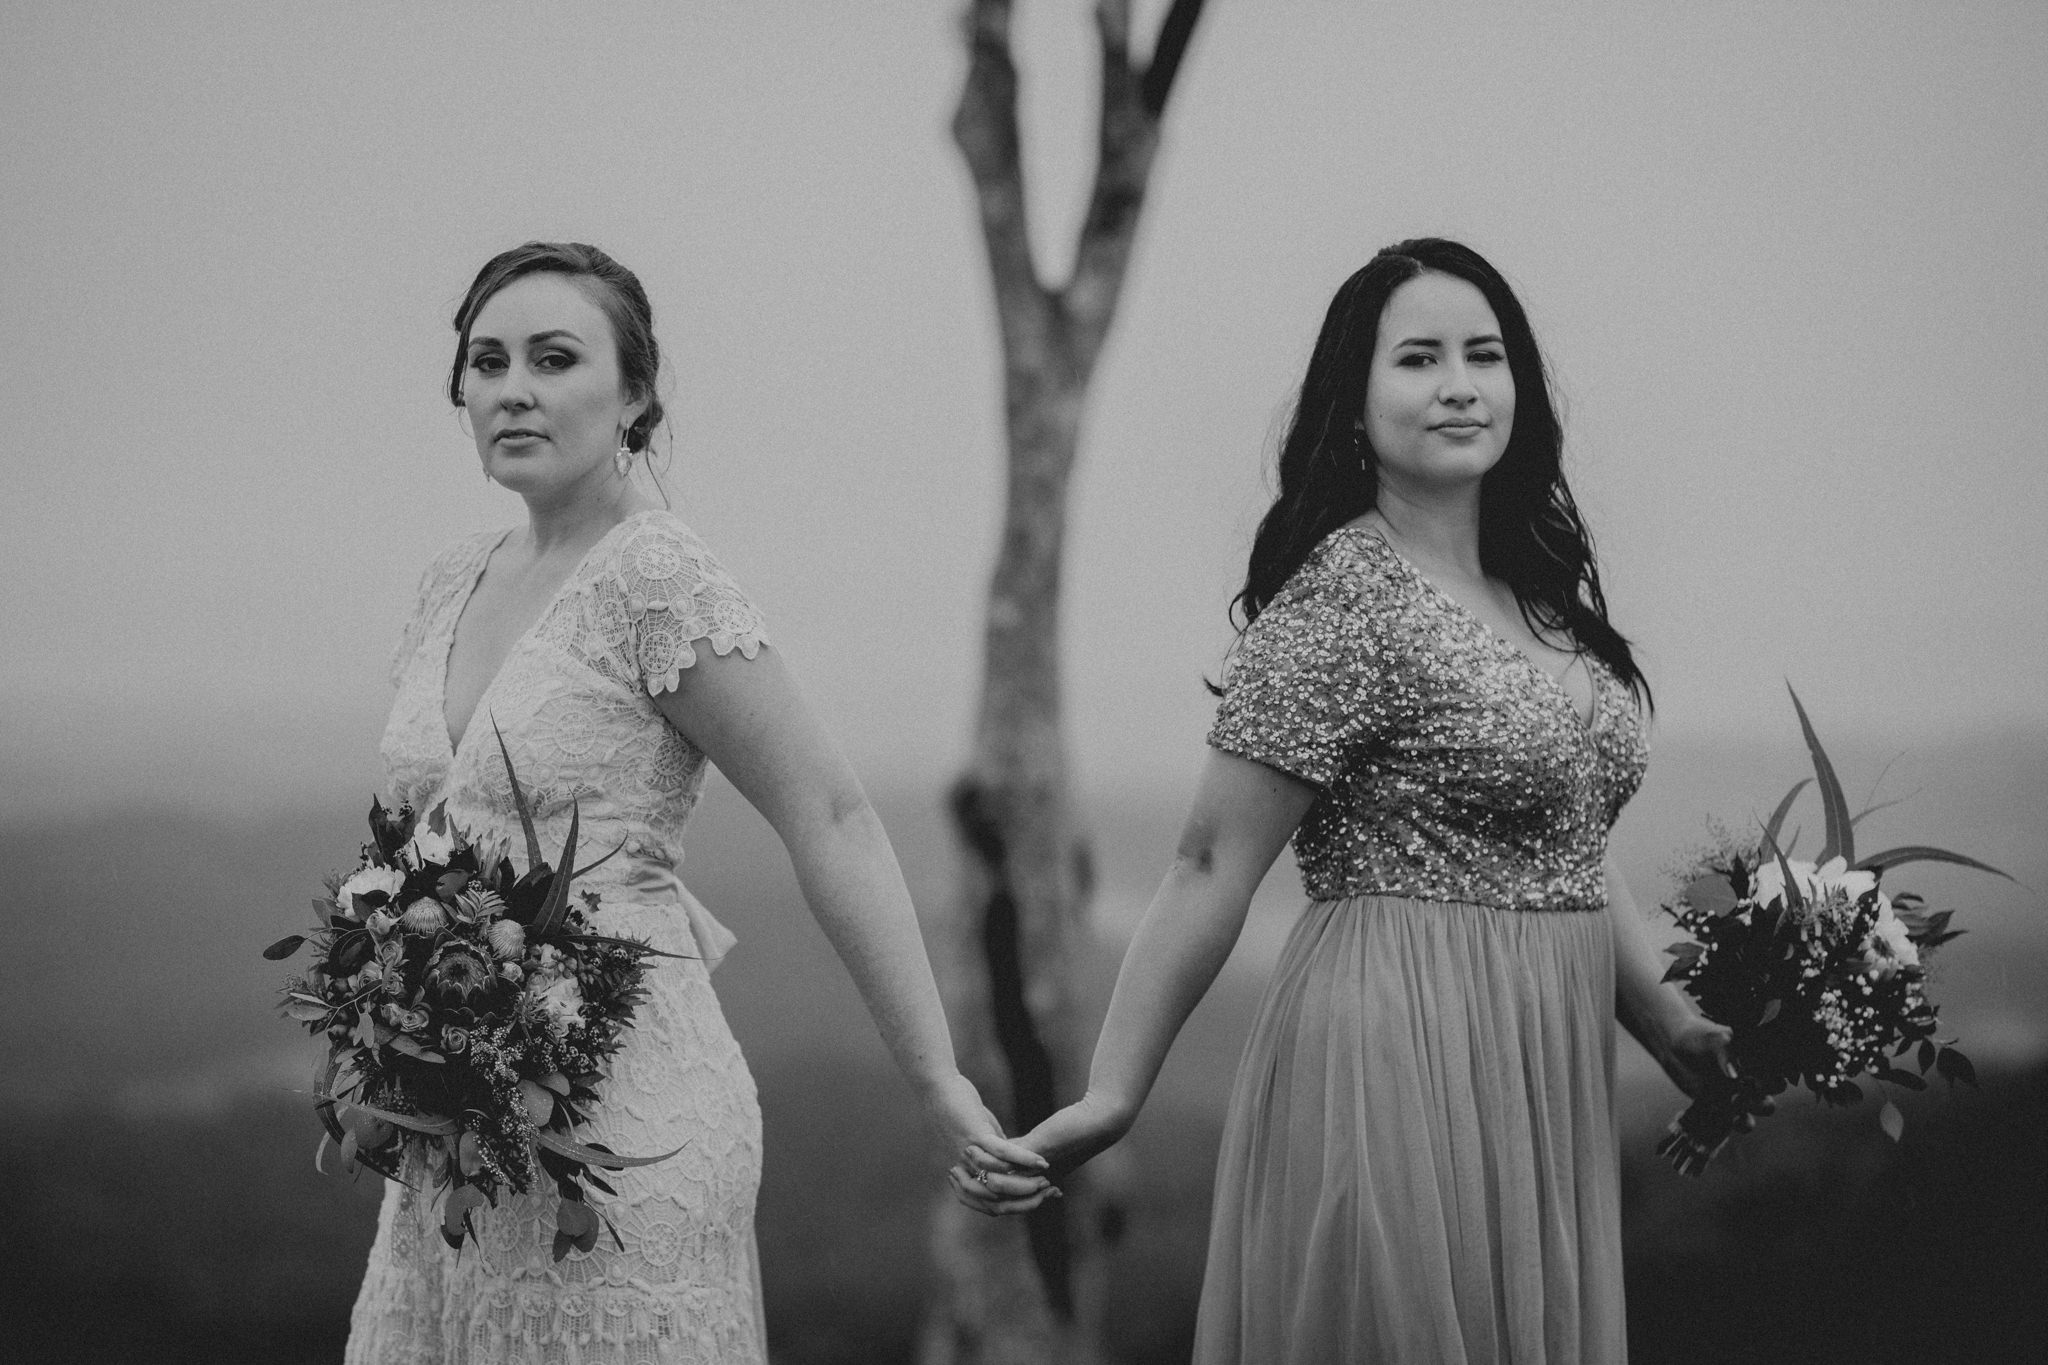 Two brides holding hands back to back looking serious at camera